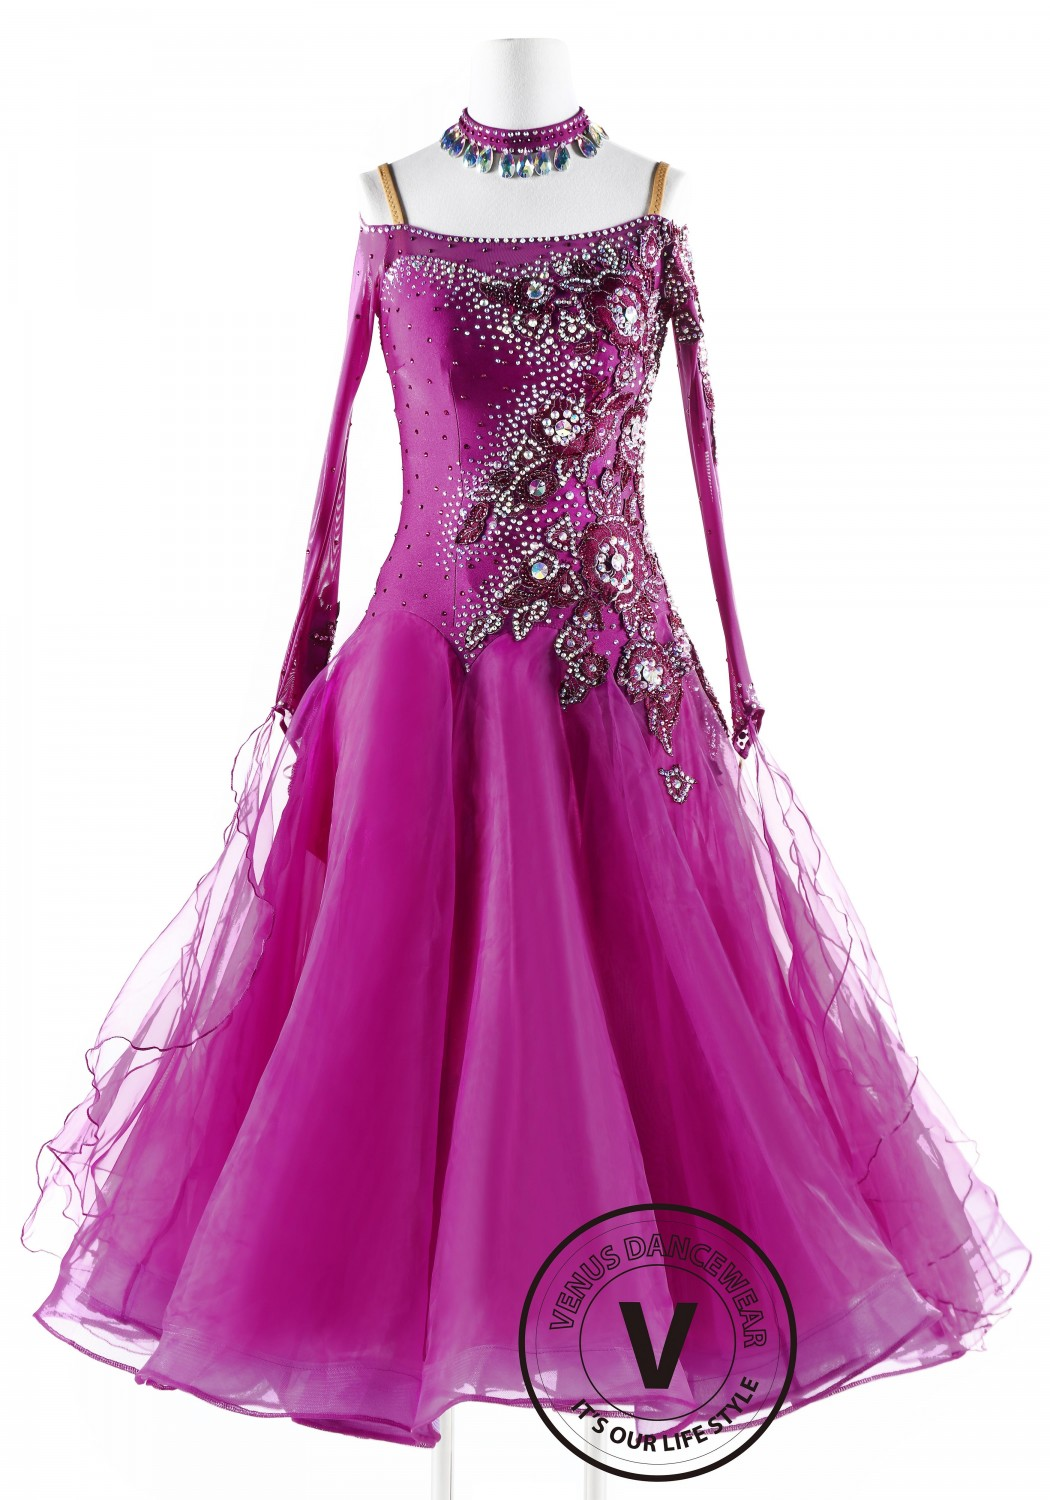 Fuchsia with Ruby Applique Ballroom Competition Dance Dress